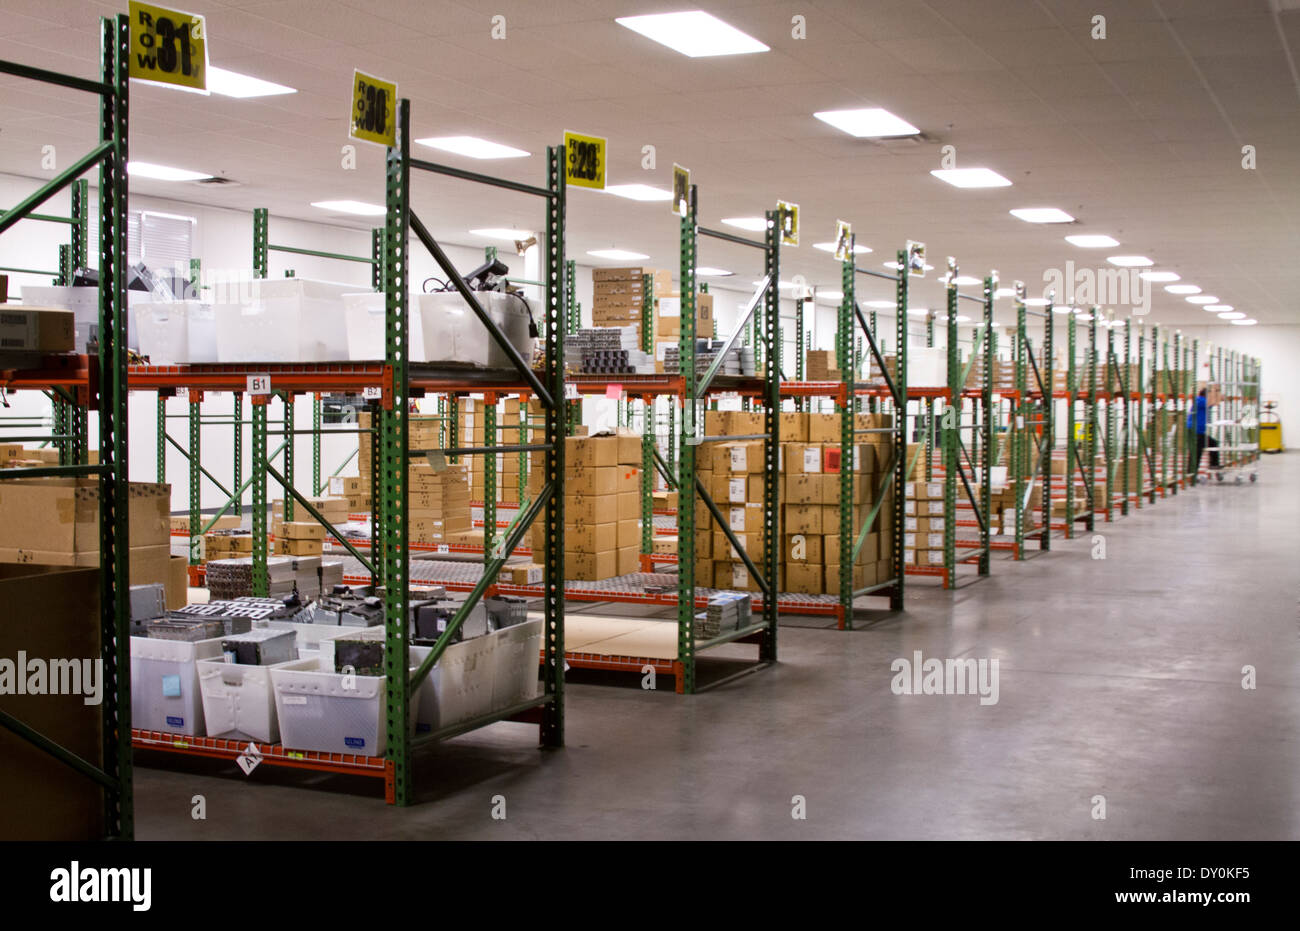 Warehouse at an HP computer technology services business - Stock Image